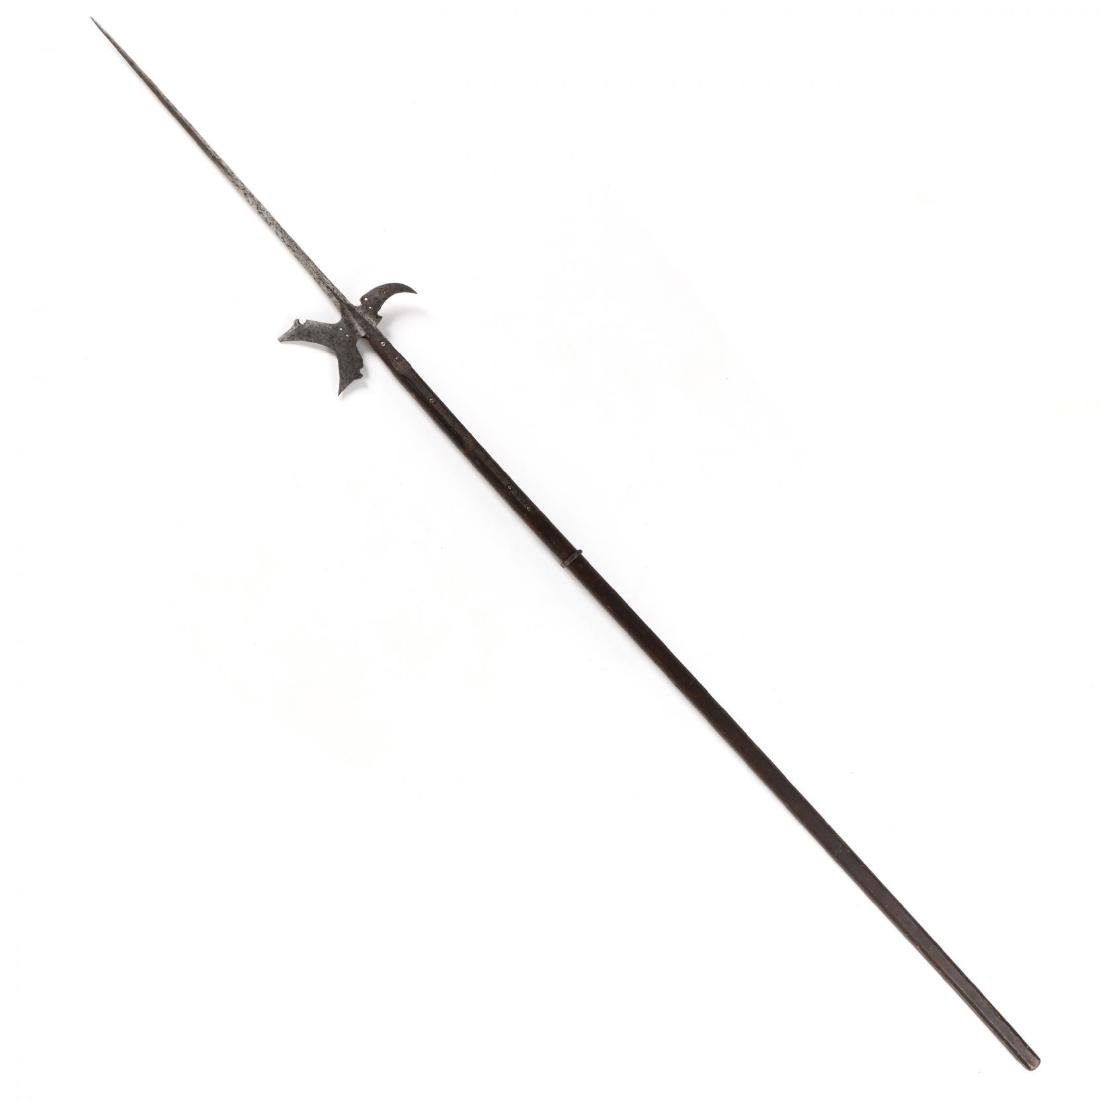 Continental Halberd, 17th - Early 18th Century